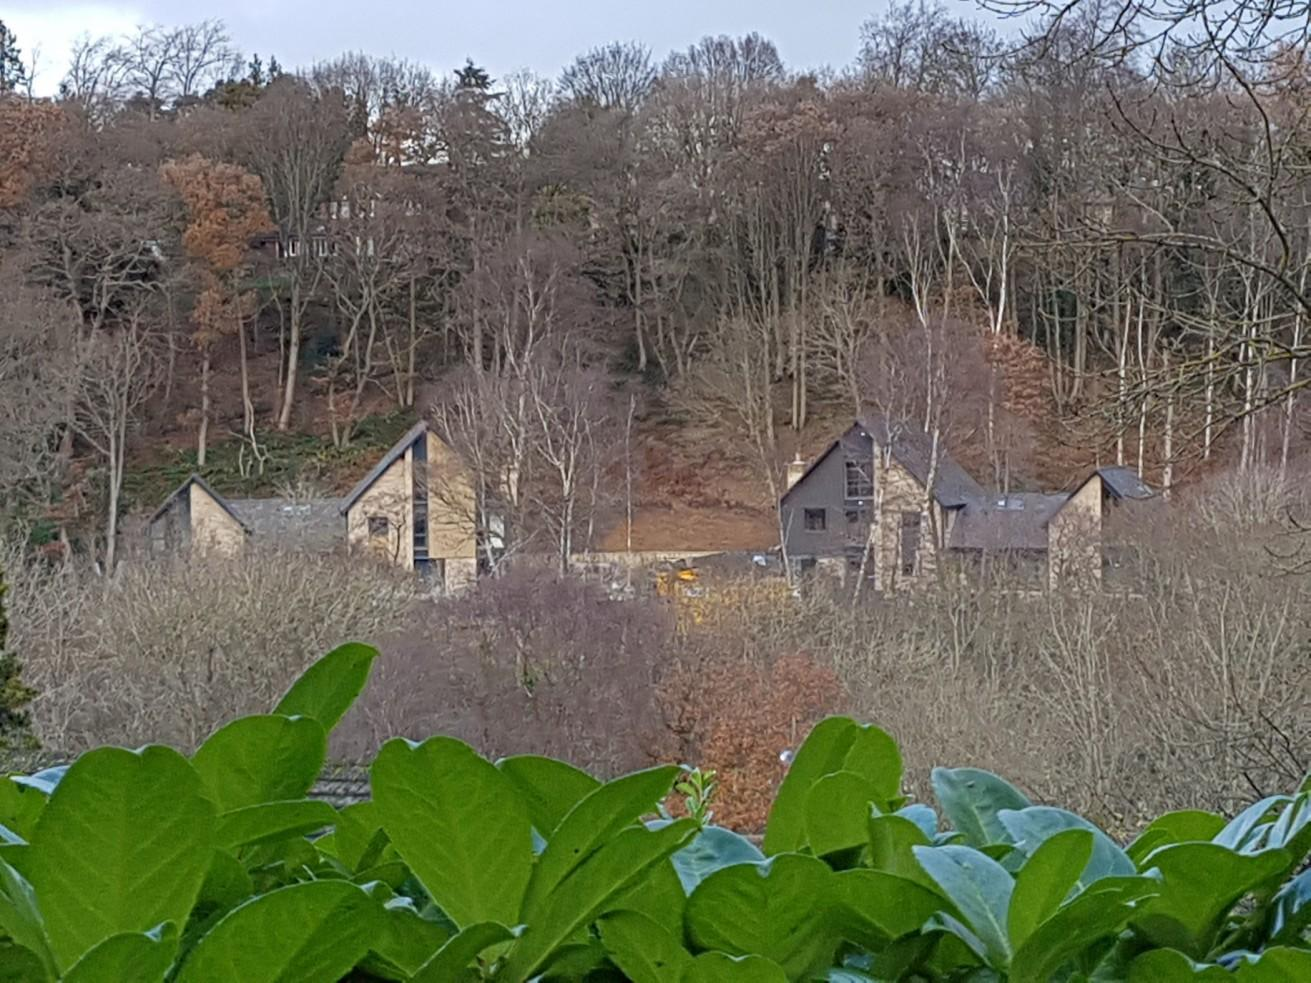 Houses at Riding Mill